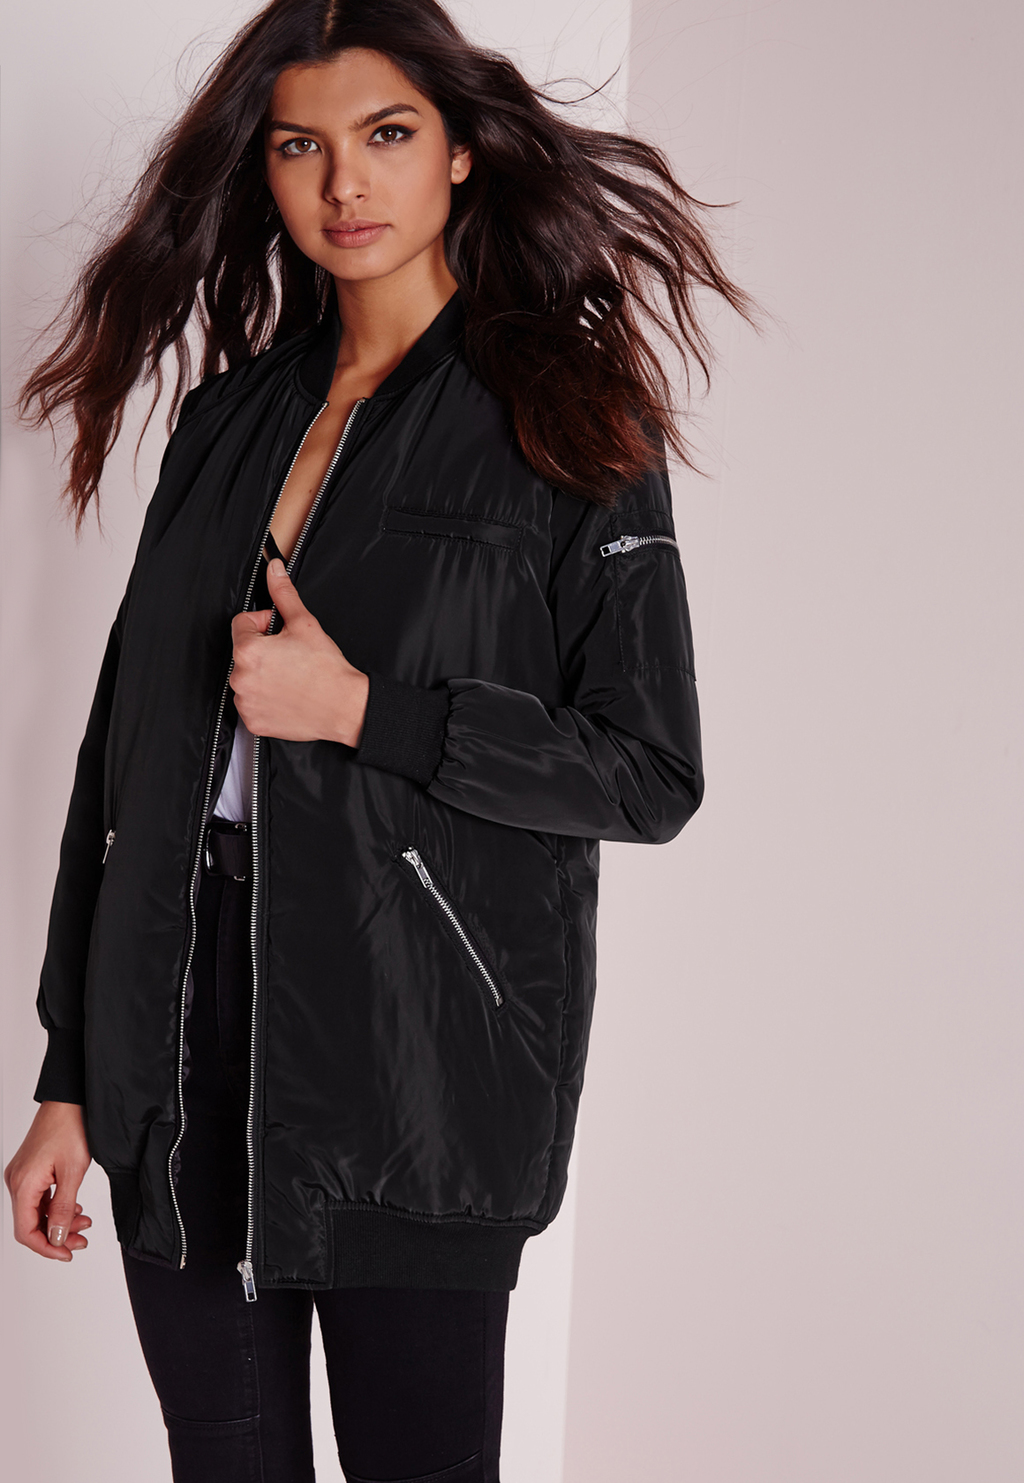 Longline Padded Bomber Jacket Black, Black - pattern: plain; style: bomber; predominant colour: black; occasions: casual; fit: straight cut (boxy); fibres: polyester/polyamide - 100%; length: mid thigh; collar: shirt collar/peter pan/zip with opening; sleeve length: long sleeve; sleeve style: standard; collar break: high/illusion of break when open; pattern type: fabric; texture group: woven light midweight; season: a/w 2015